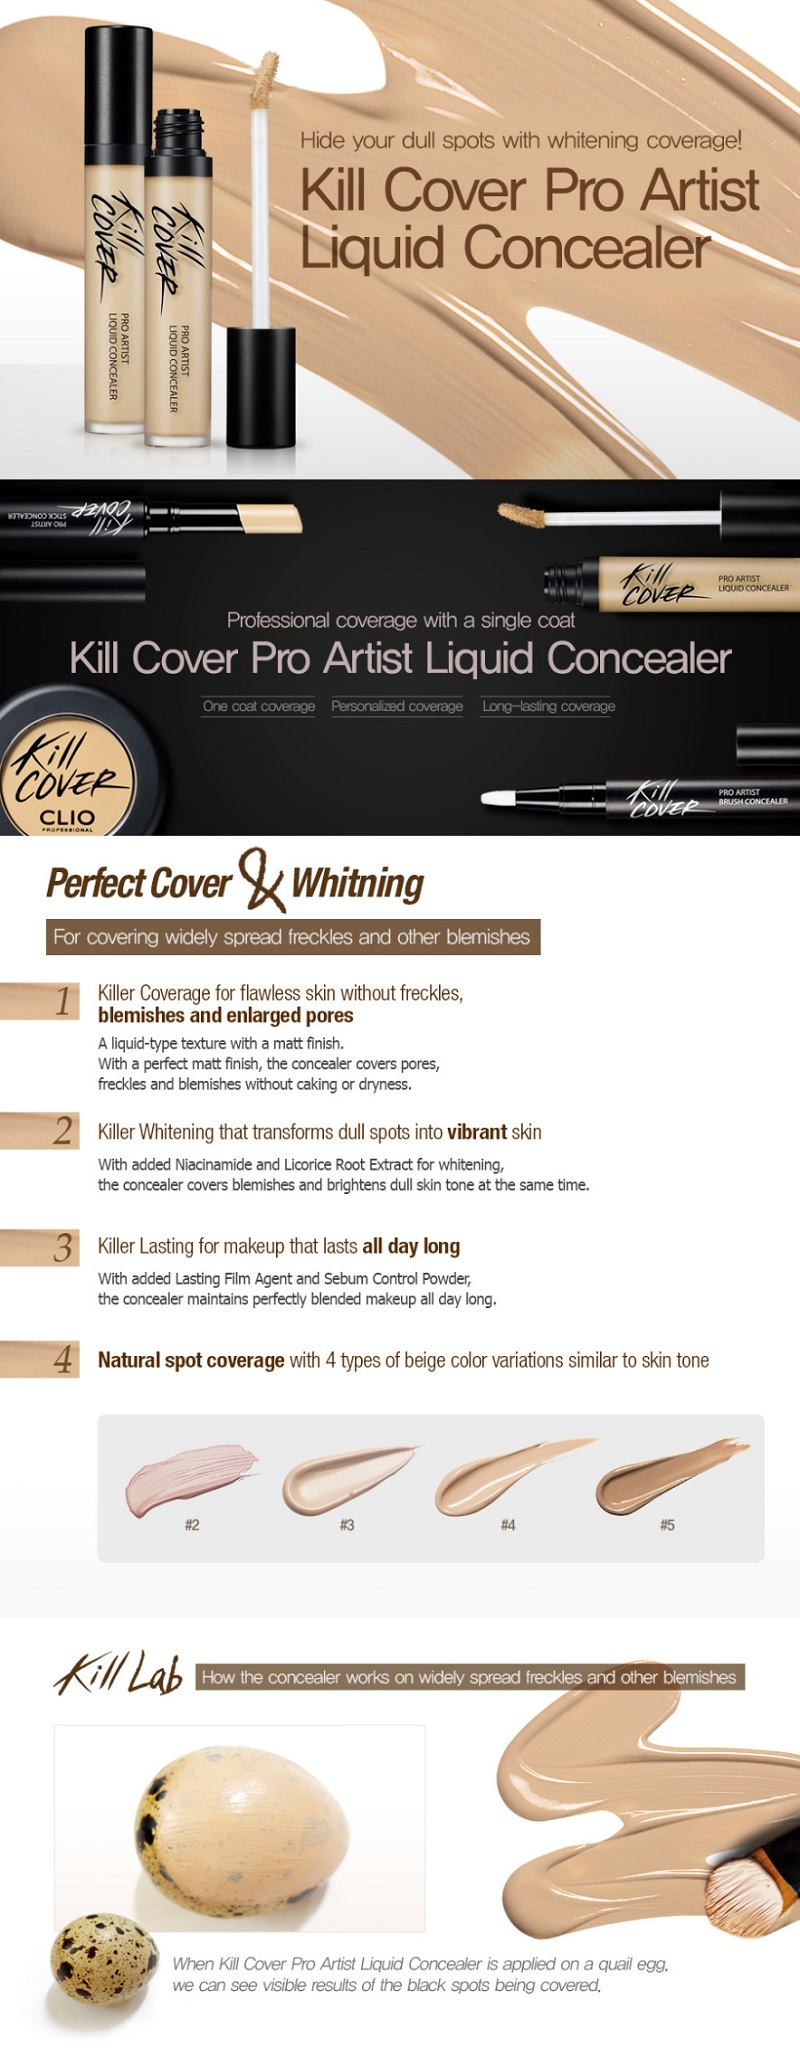 CLIO Kill Cover Pro Artist Liquid Concealer - 4 Colors